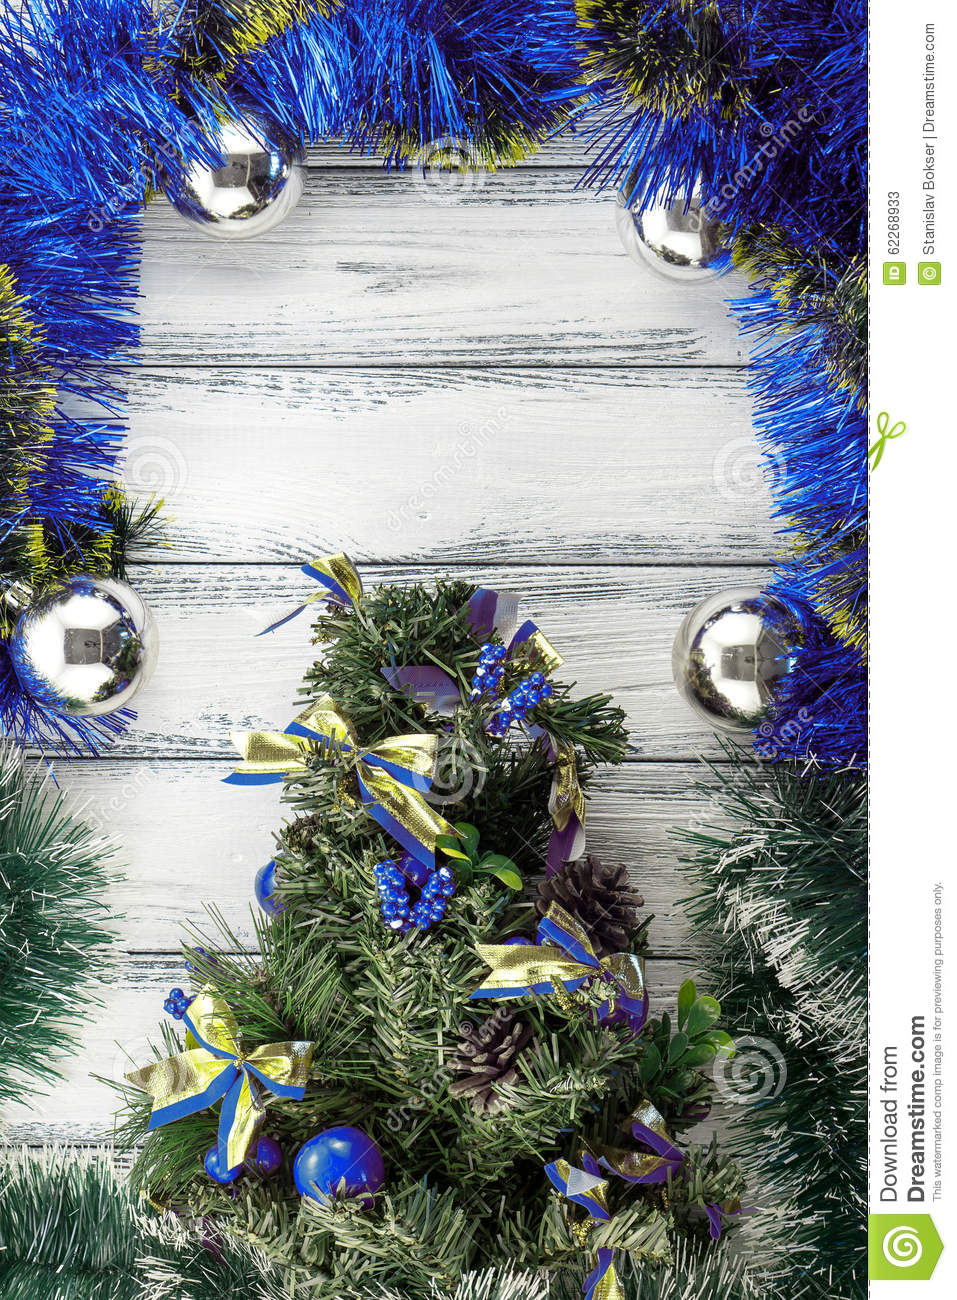 Blue green christmas tree decorations - New Year Theme Christmas Tree With Blue And Green Decoration And Silver Balls On White